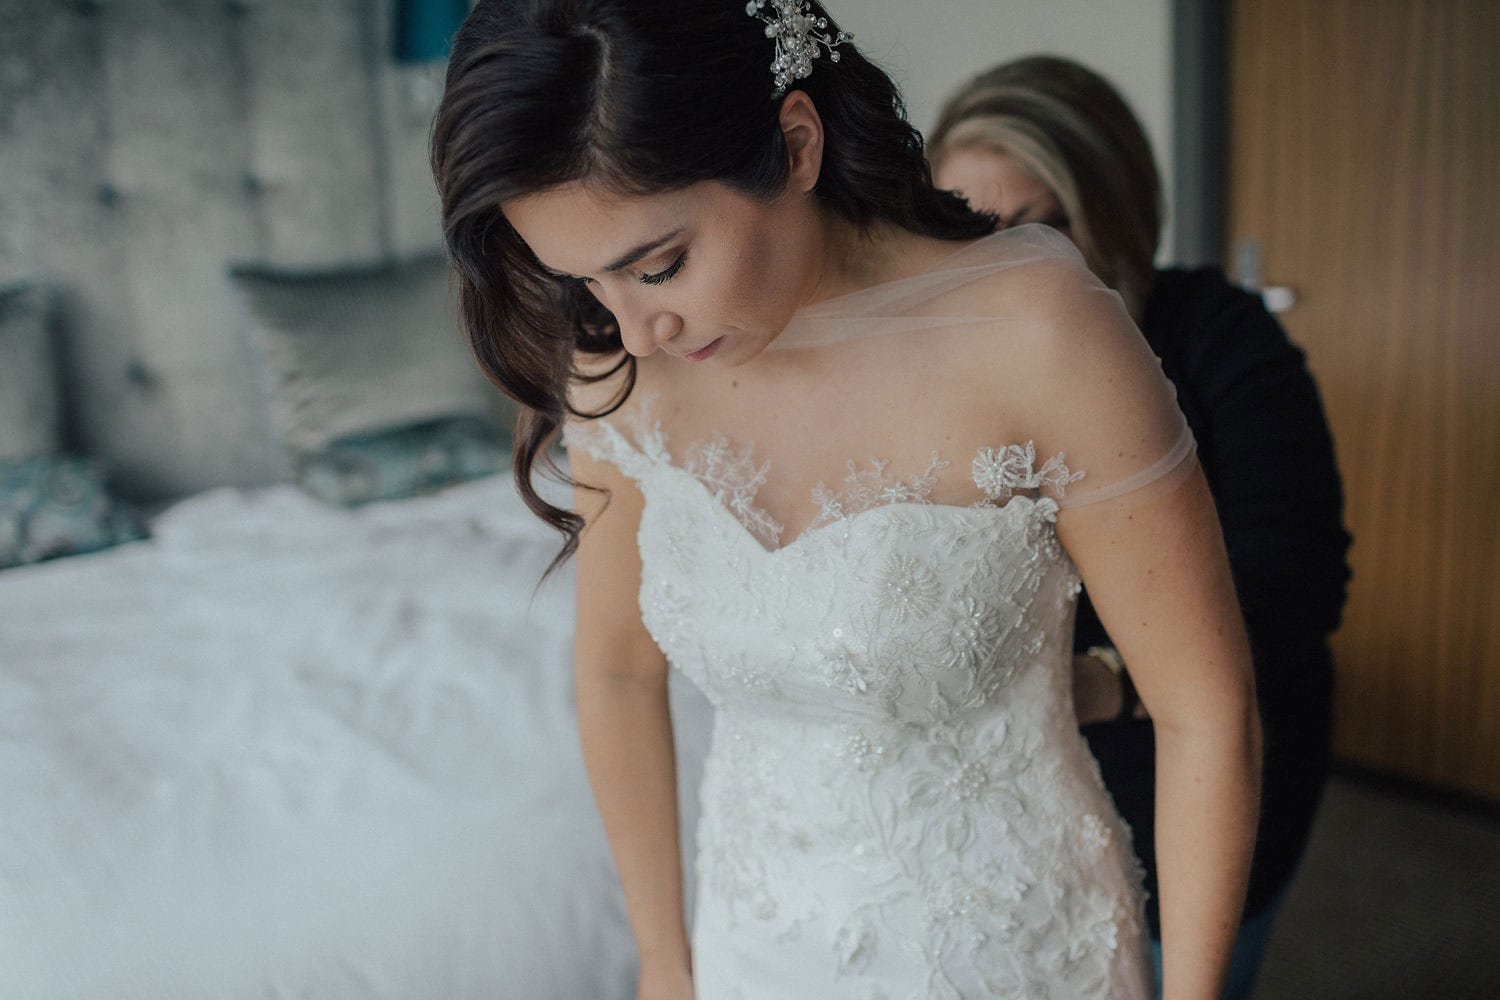 Vinka Design Features Real Weddings - bride wearing custom made lace wedding gown. Bride getting ready